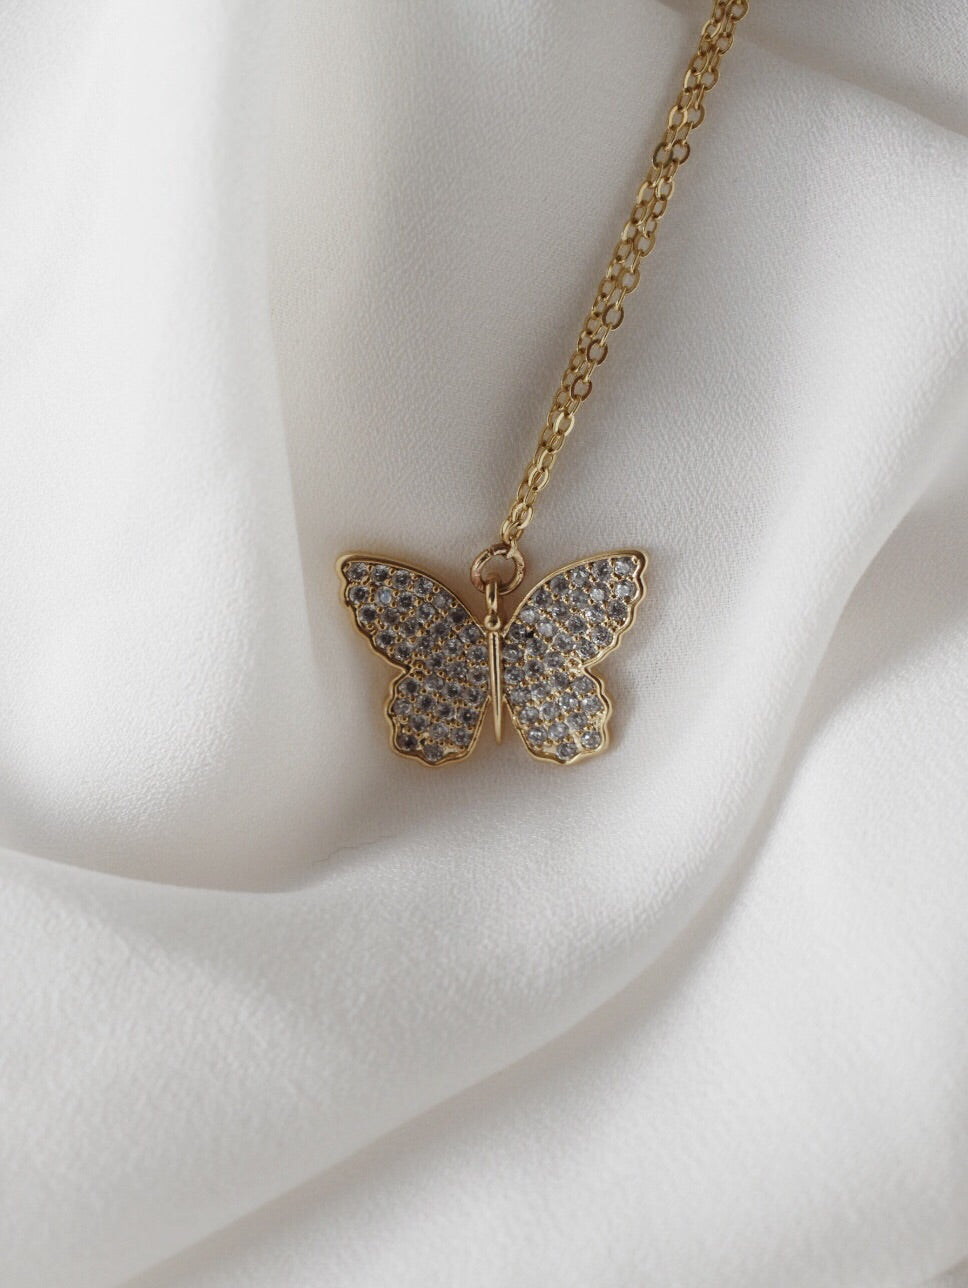 The Kylie Diamond Butterfly Necklace - 16k Gold Plated